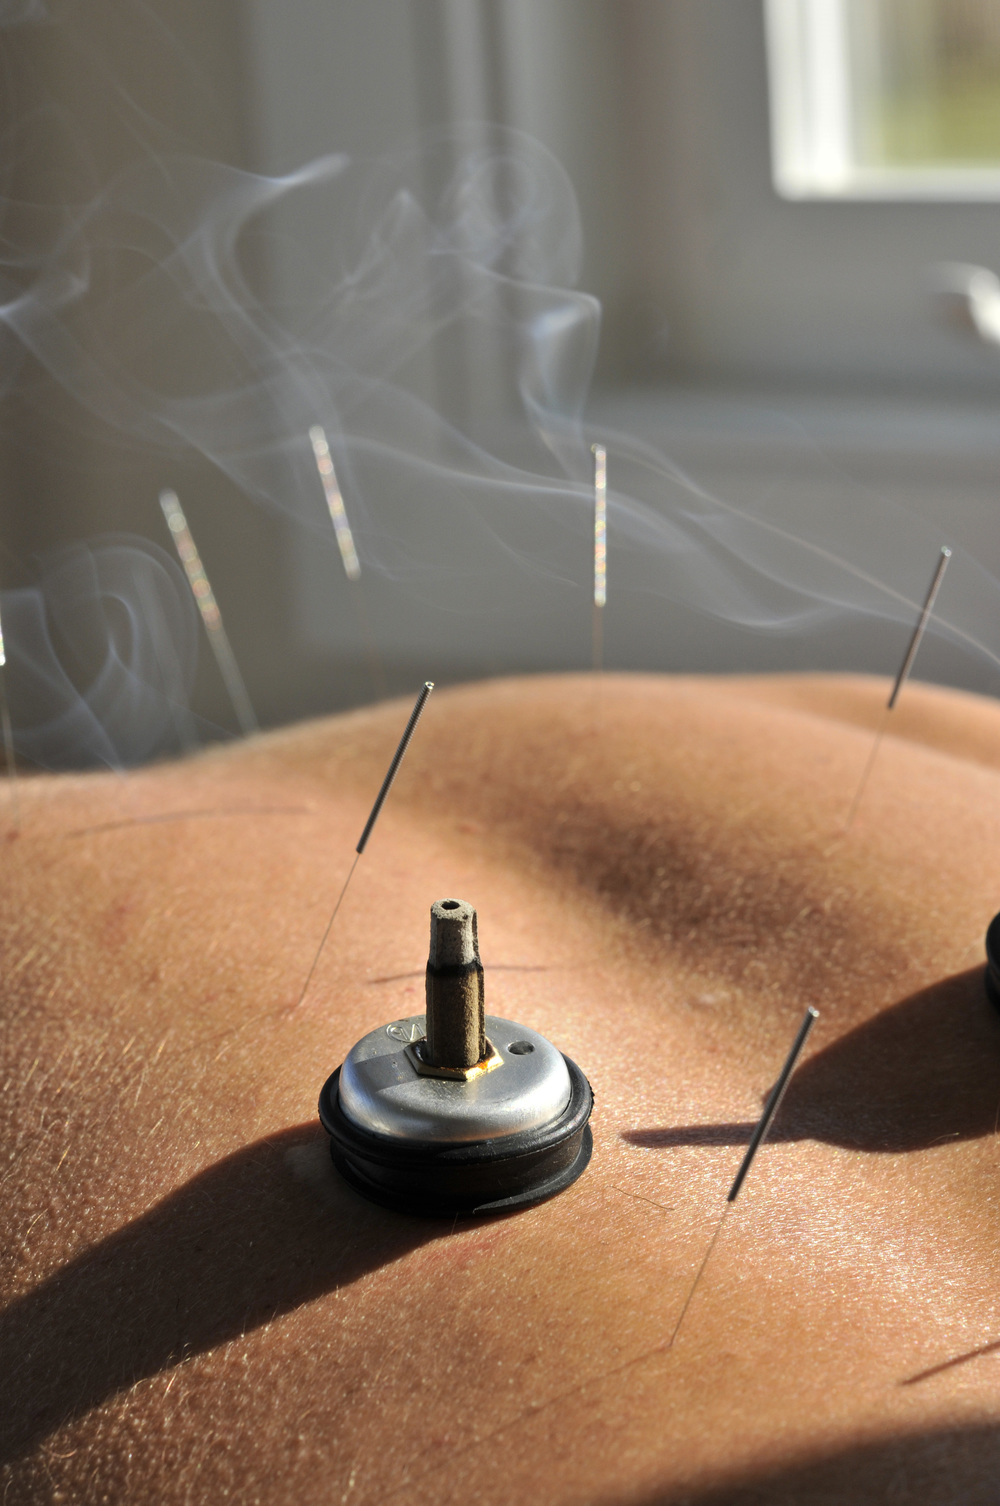 Acupuncture treatment with Moxibustion